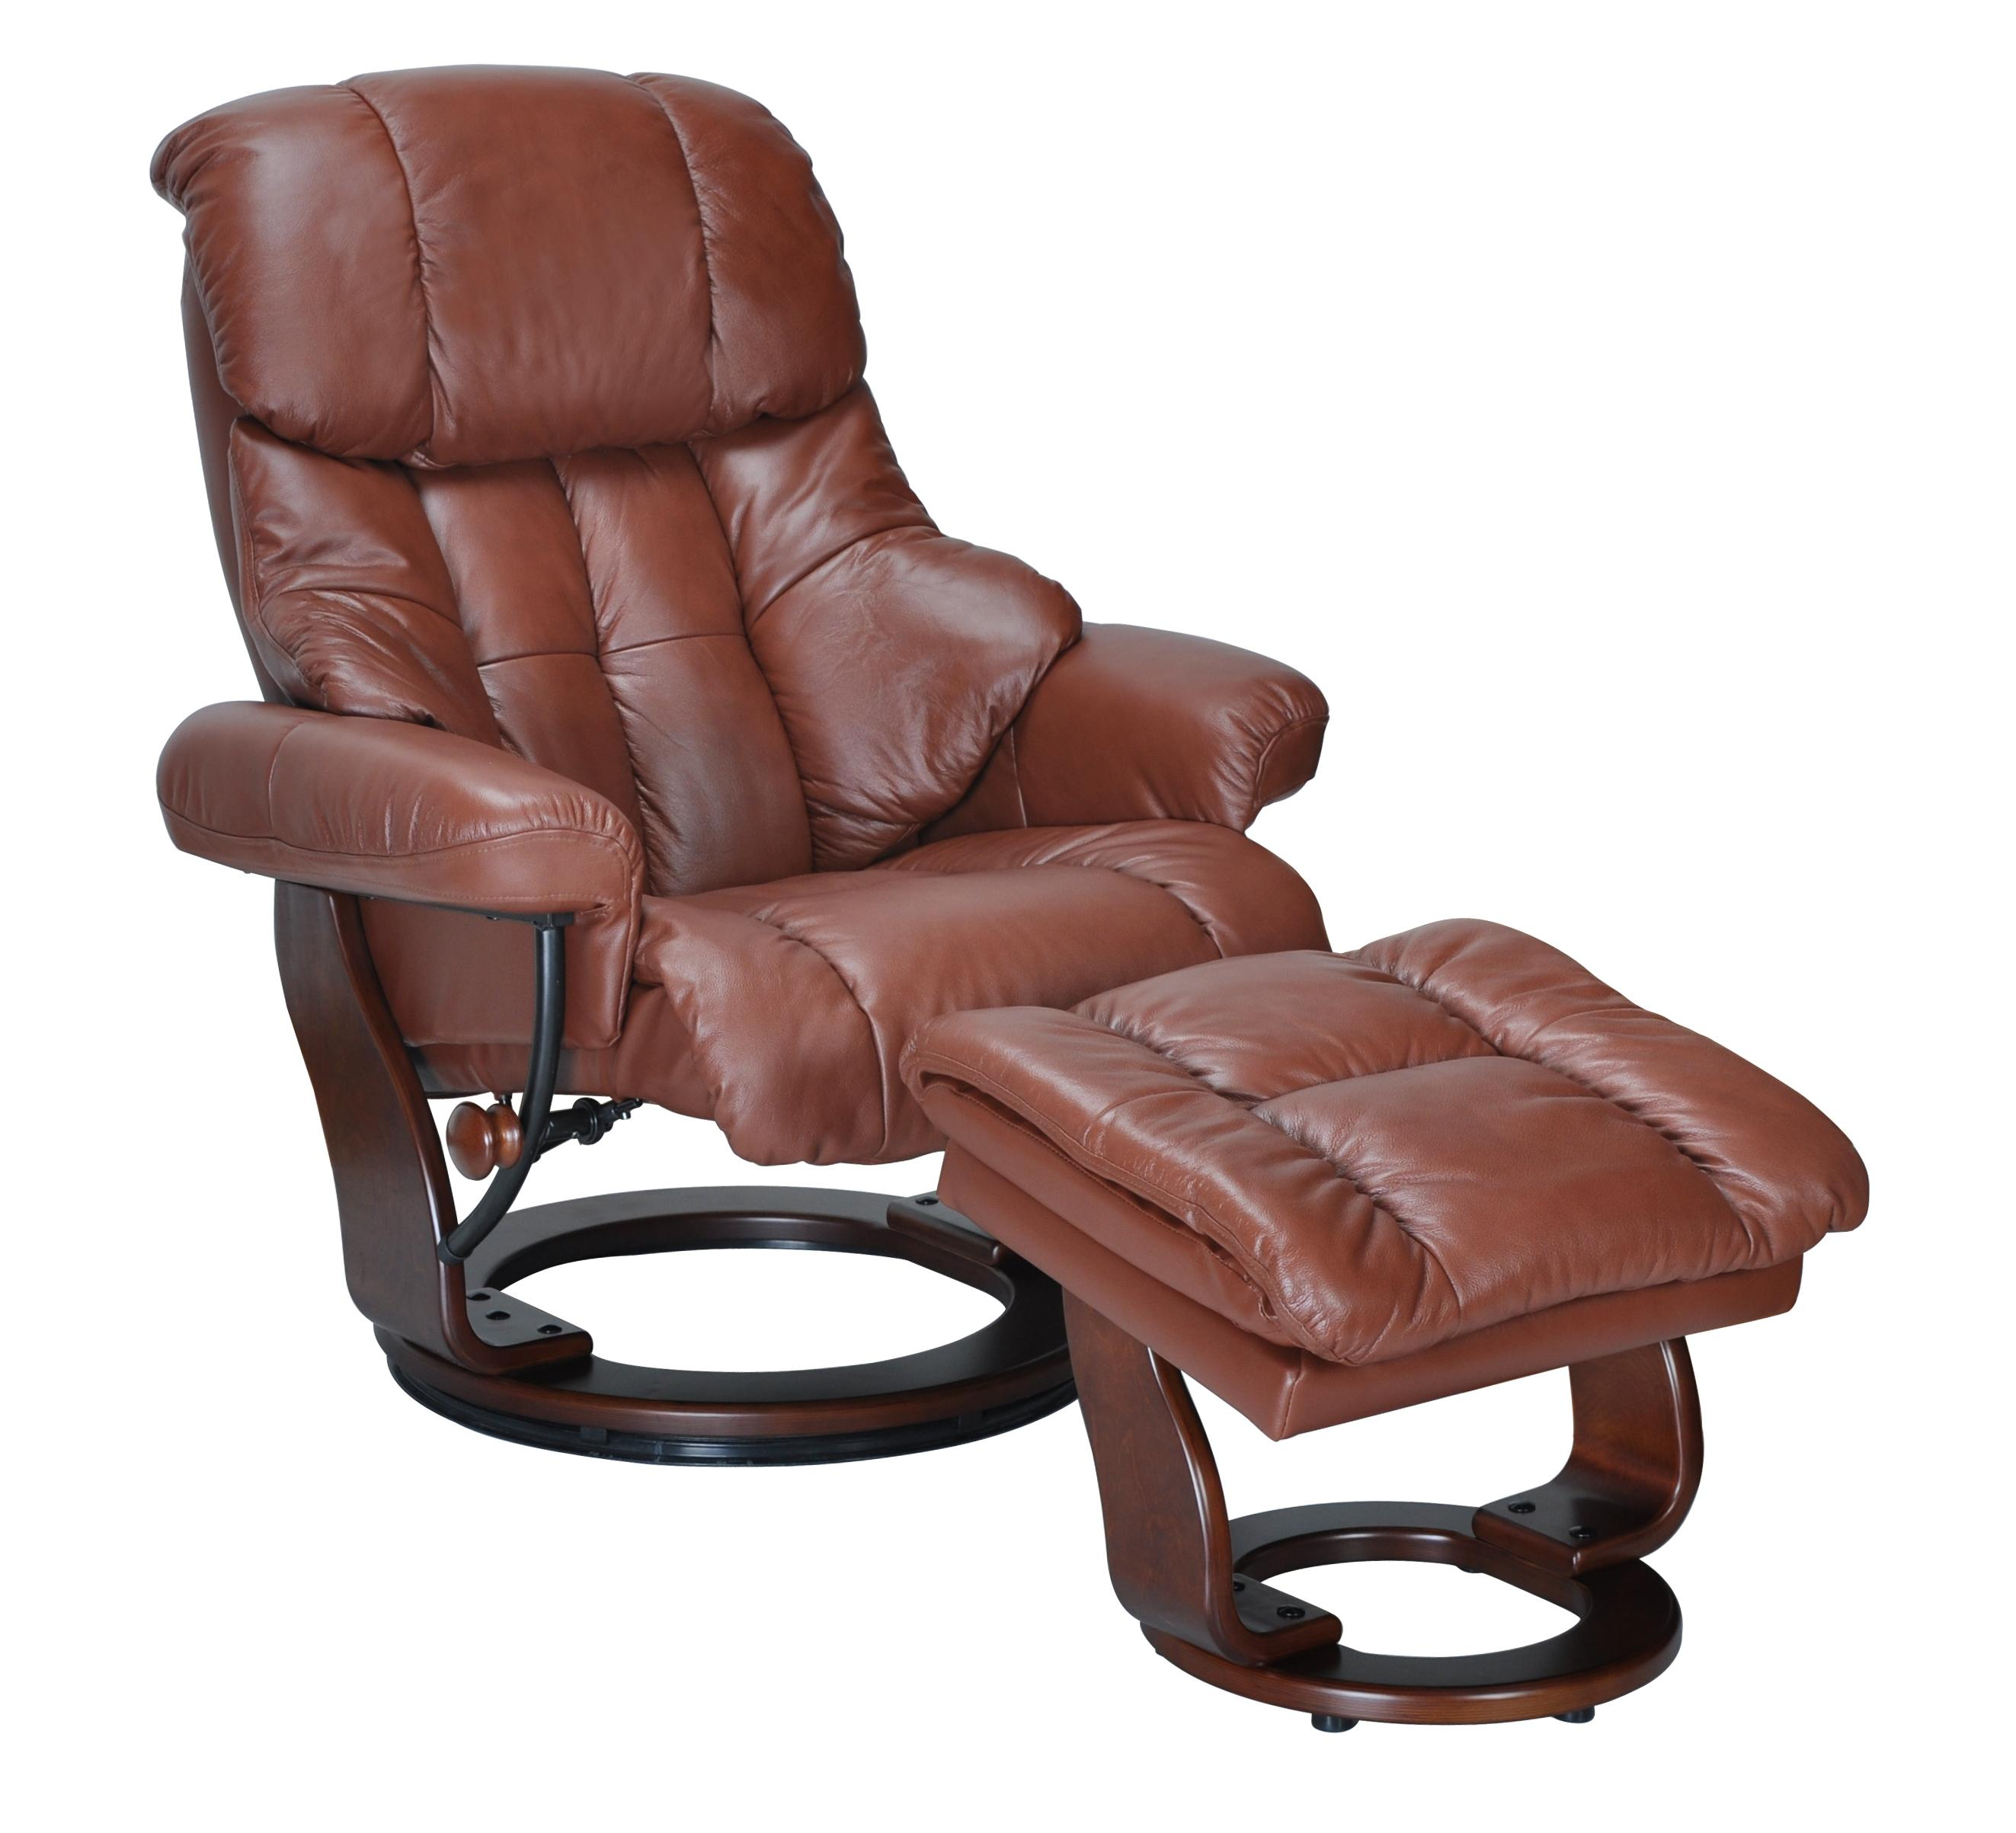 Benchmaster Verona  The Nicholas Recliner - Item Number: 7438